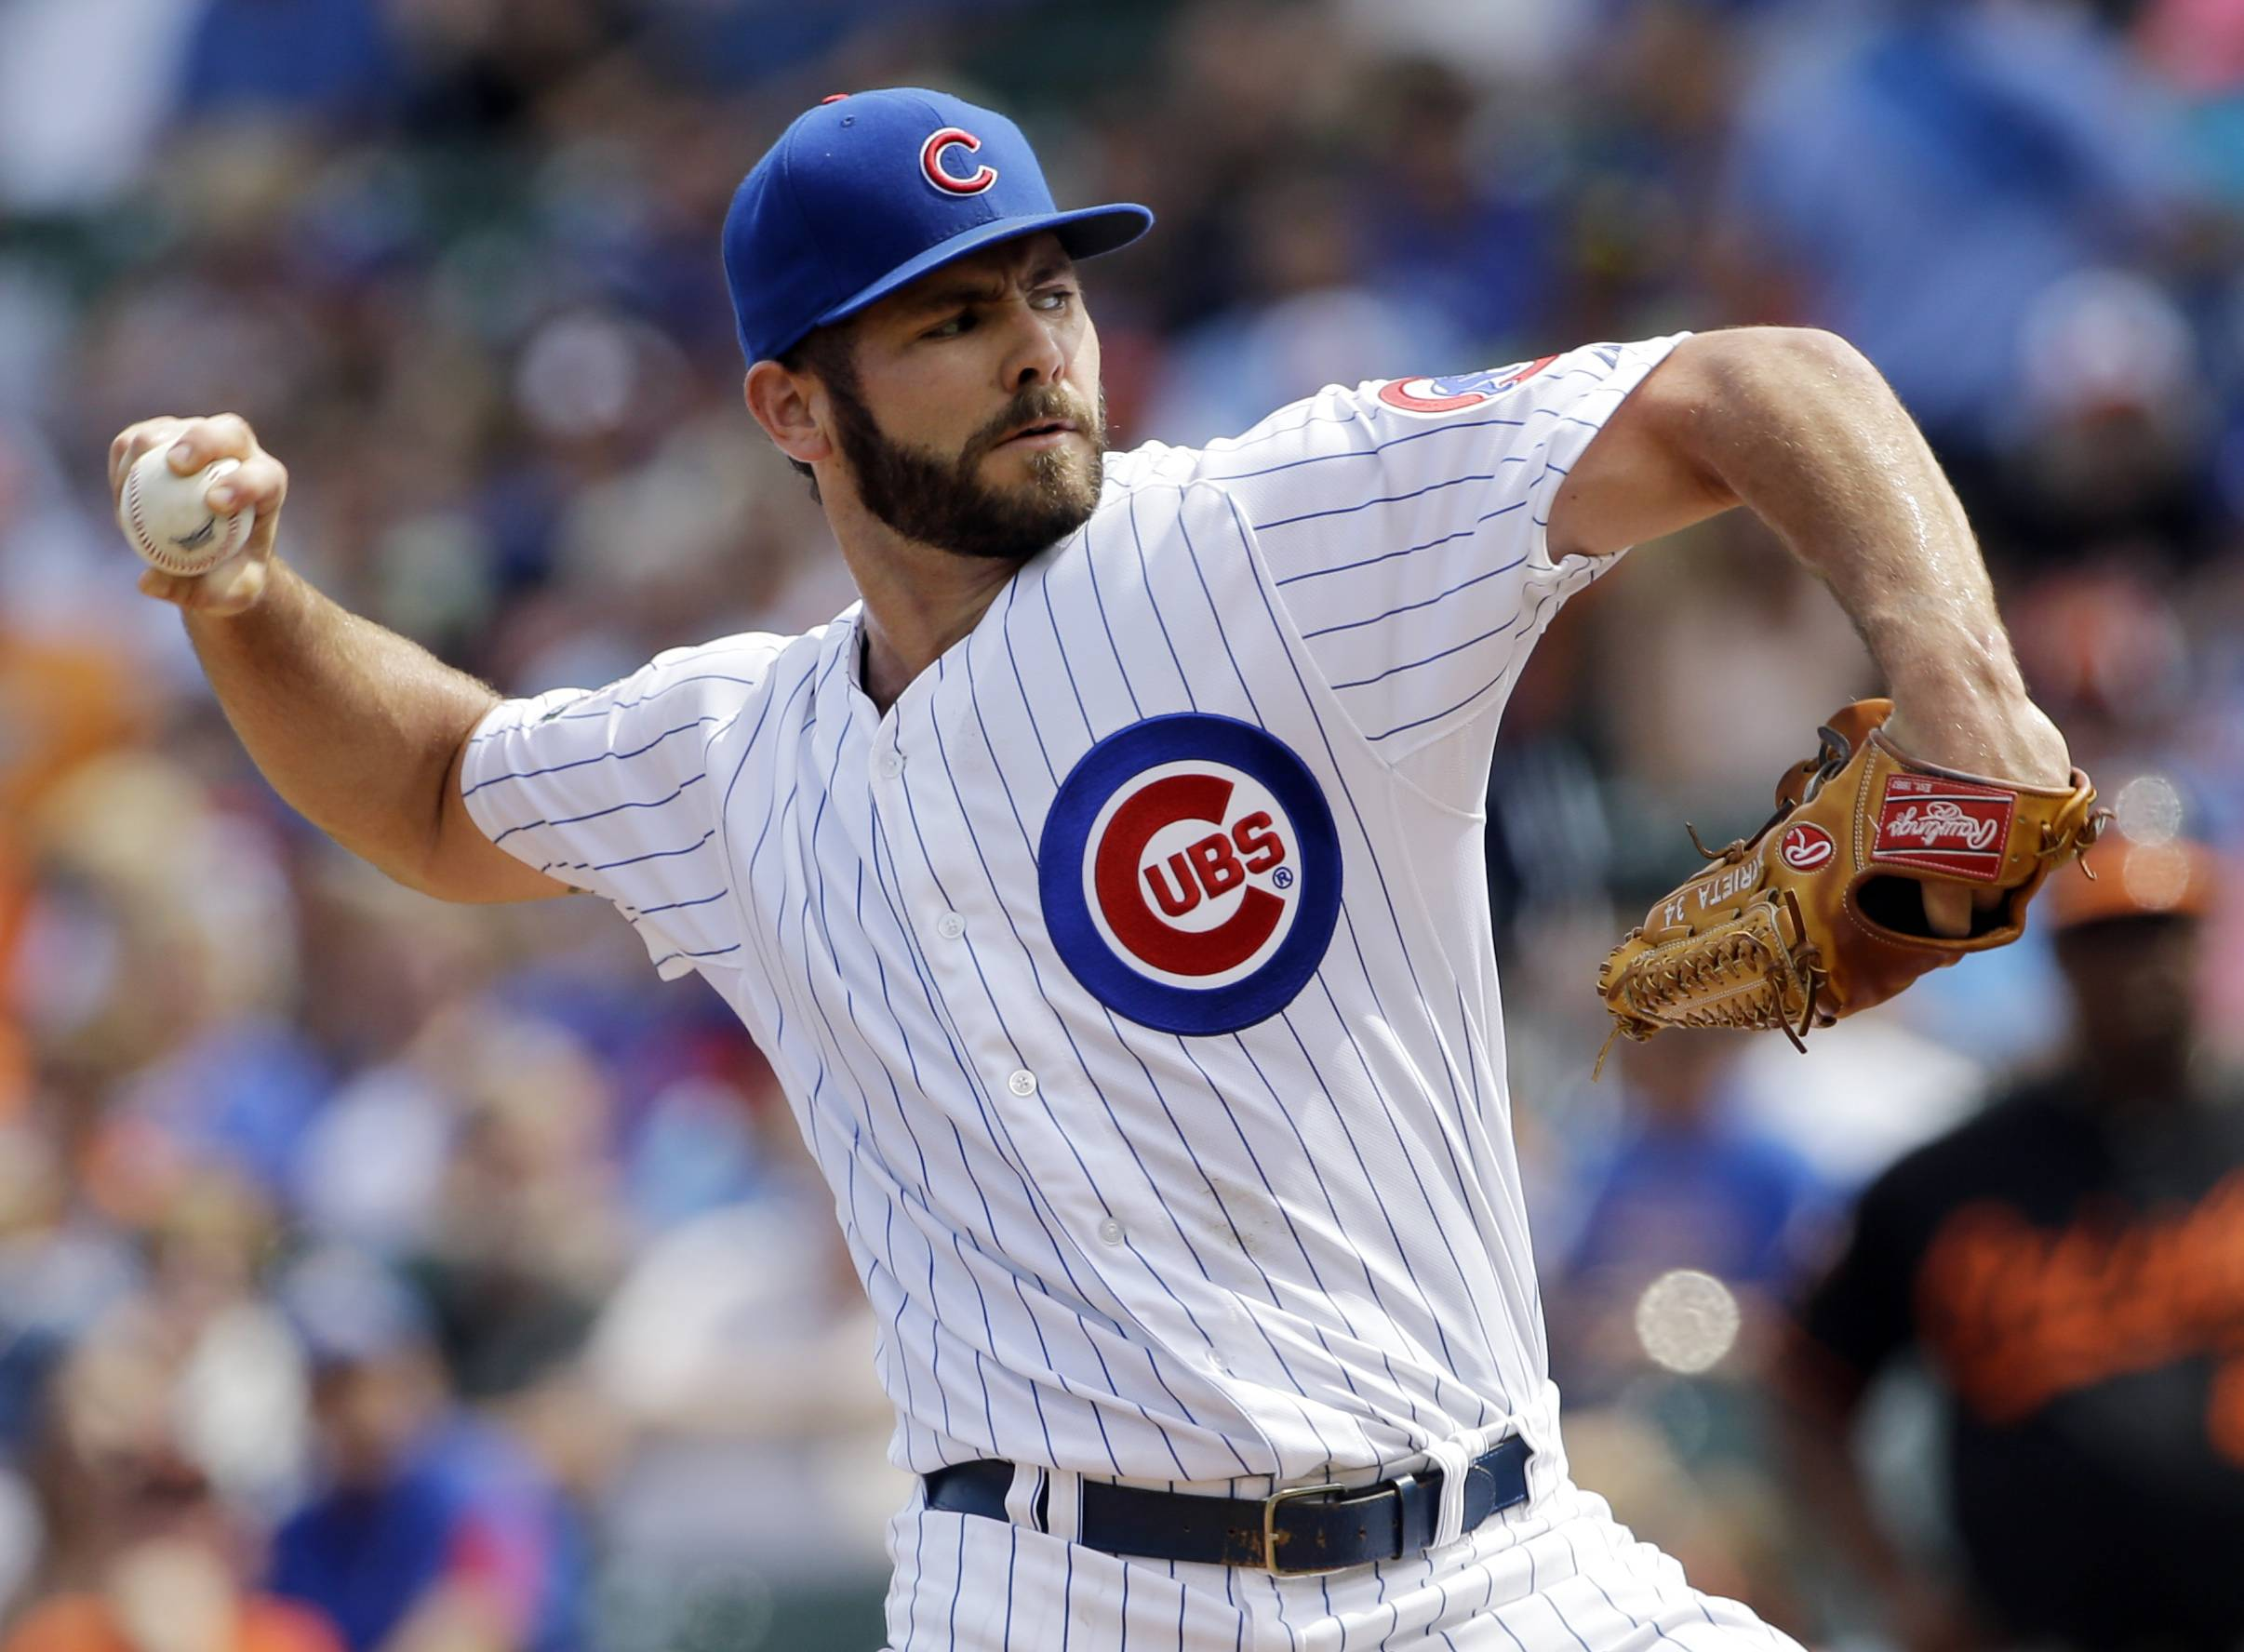 Cubs' Arrieta, Strop shut down their former team